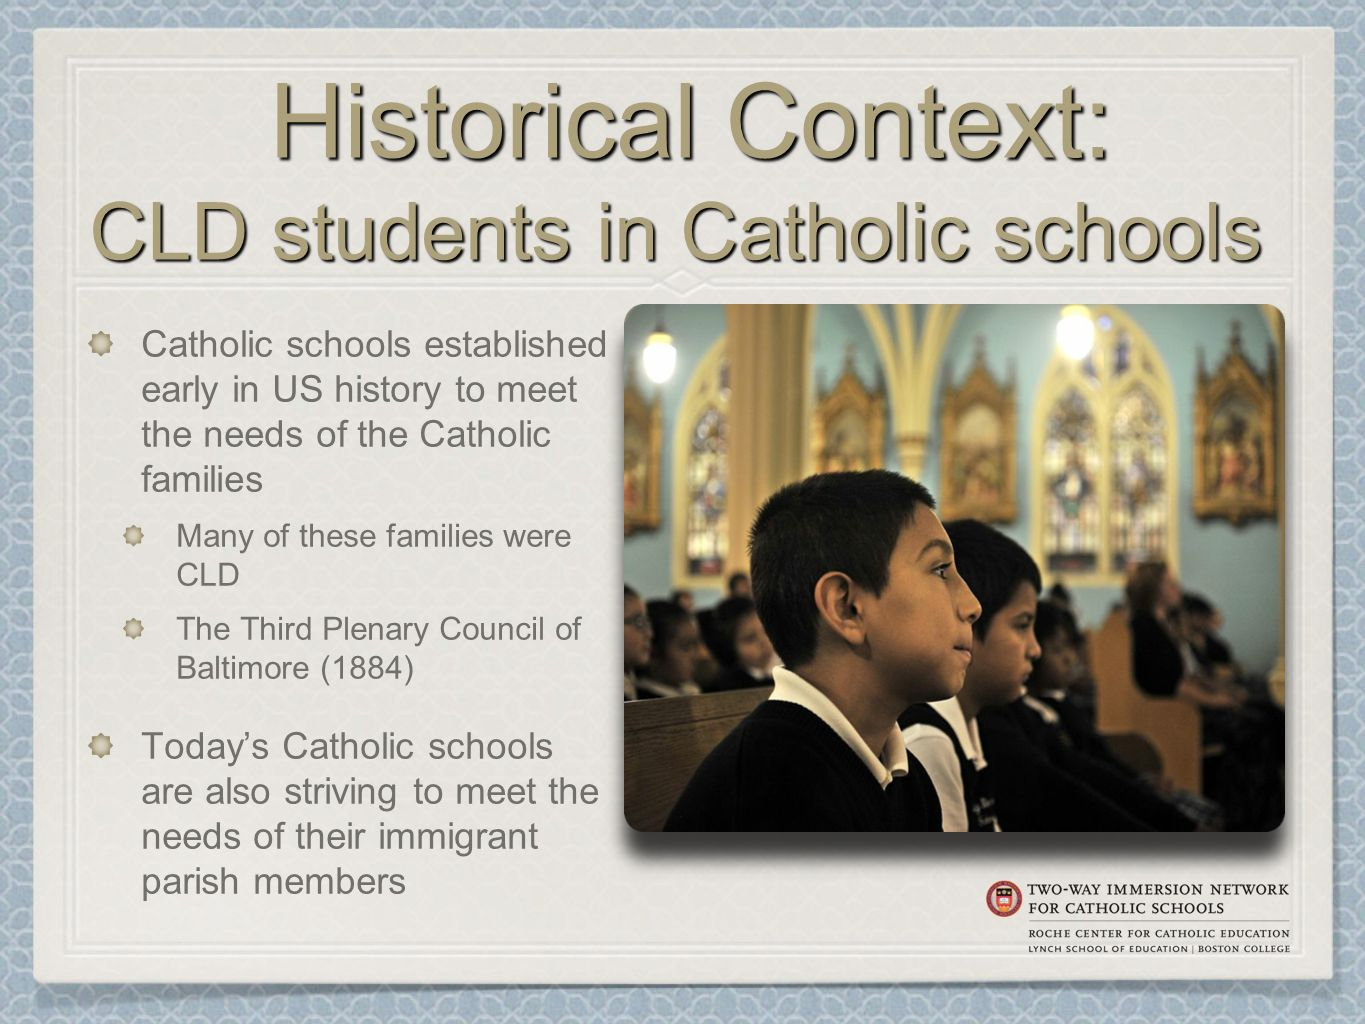 Historical Context: CLD students in Catholic schools Historical Context: CLD students in Catholic schools Catholic schools established early in US history to meet the needs of the Catholic families Many of these families were CLD The Third Plenary Council of Baltimore (1884) Today's Catholic schools are also striving to meet the needs of their immigrant parish members